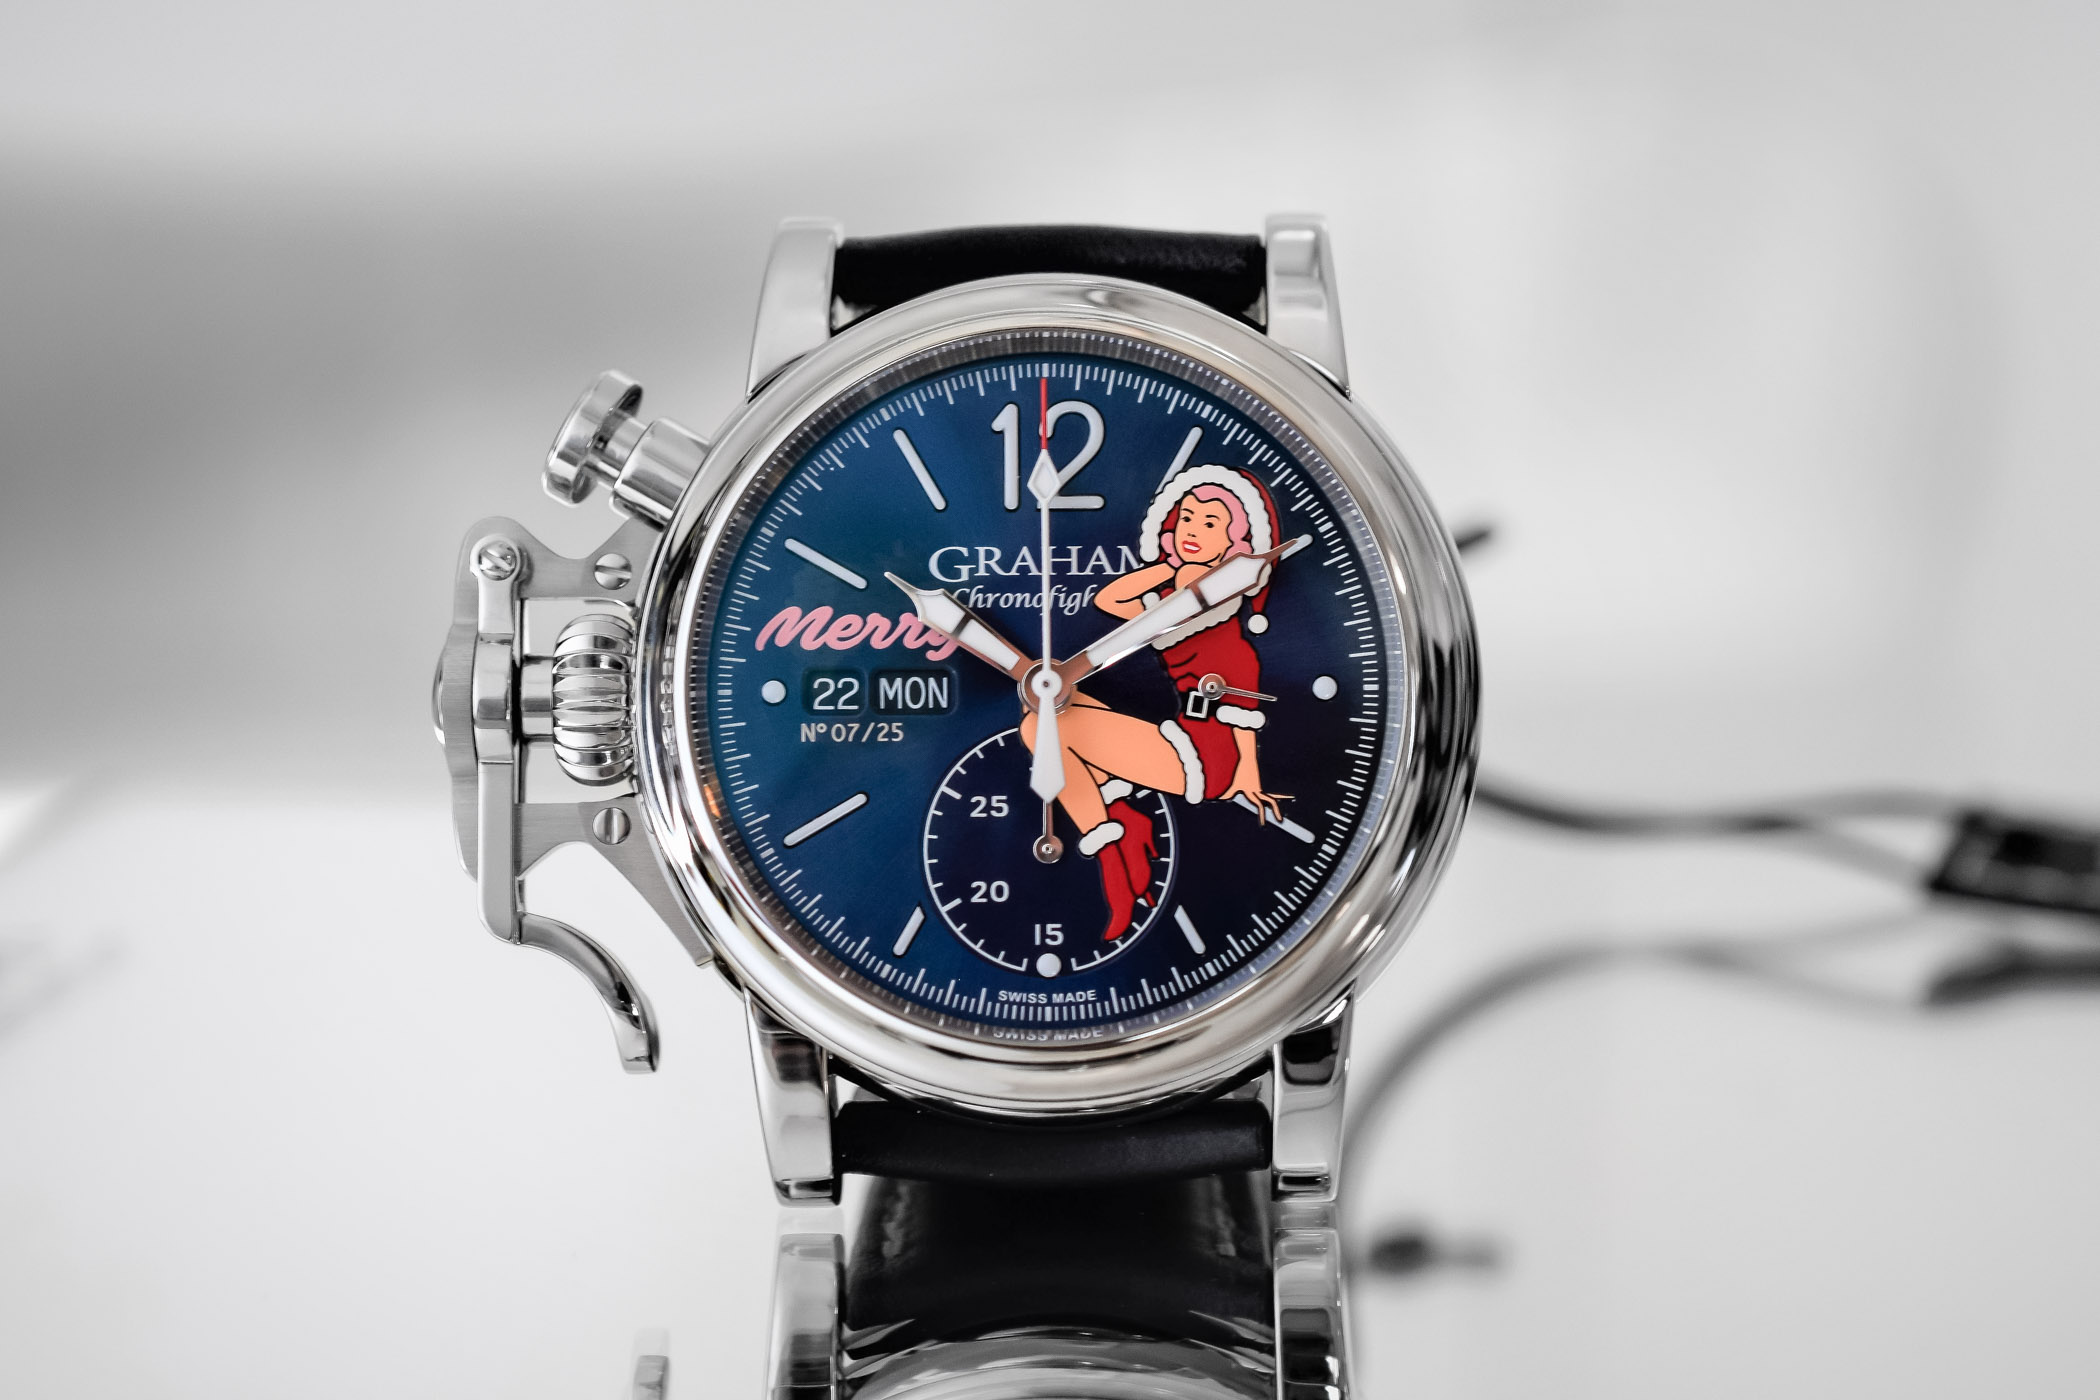 silverstone com graham los forbes amp la arieladams edition watches watch images for fans angeles players sites s limited kings